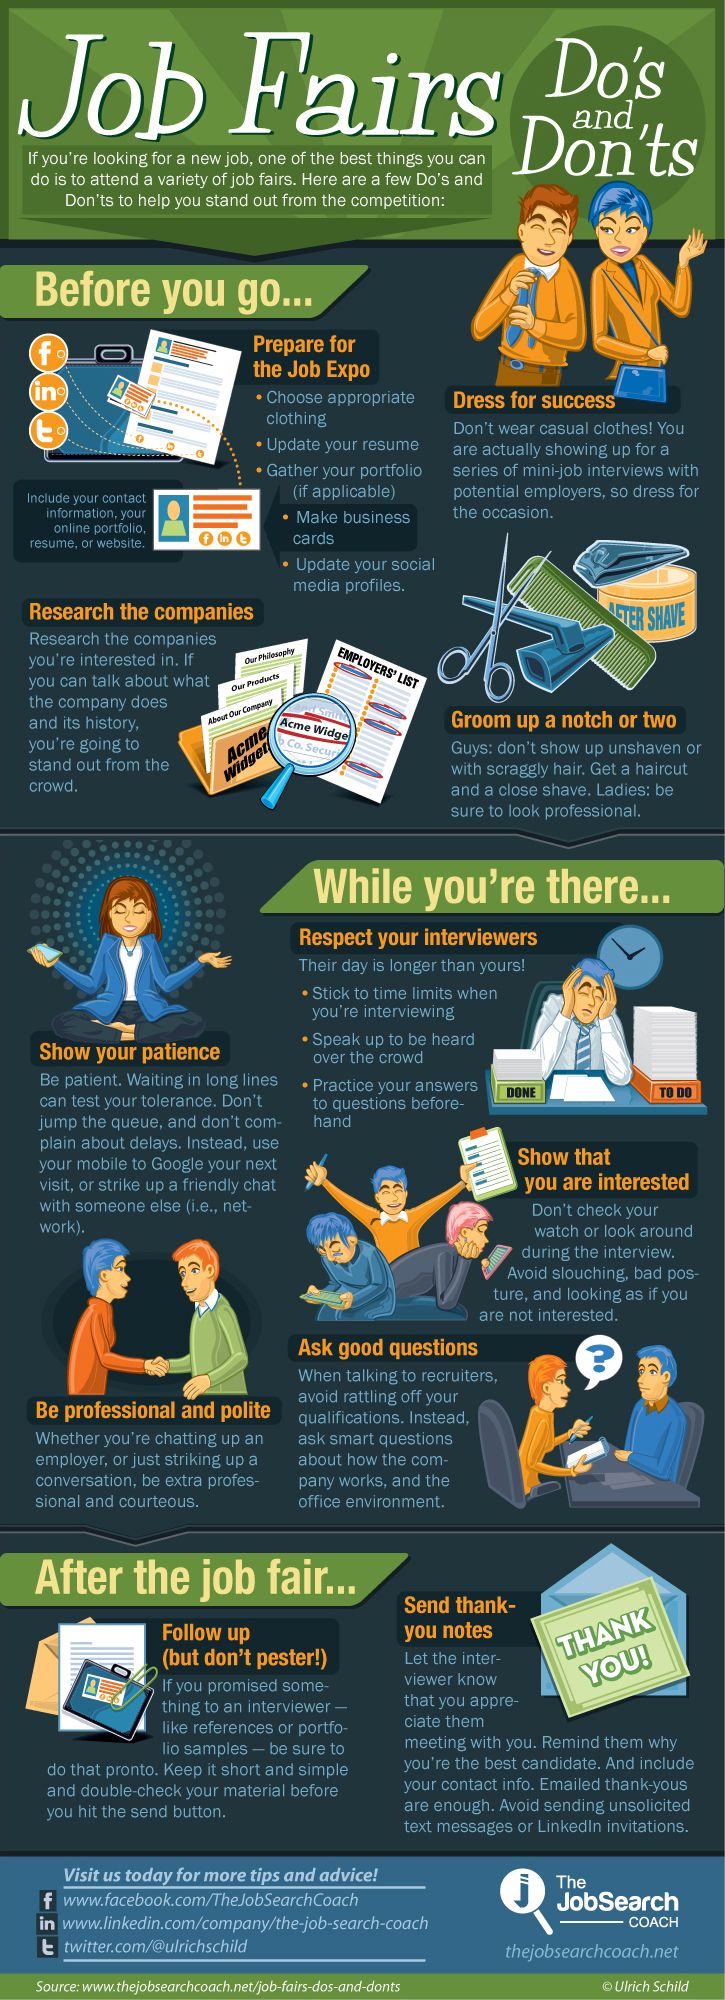 infographic the fair expo dos and donts if you